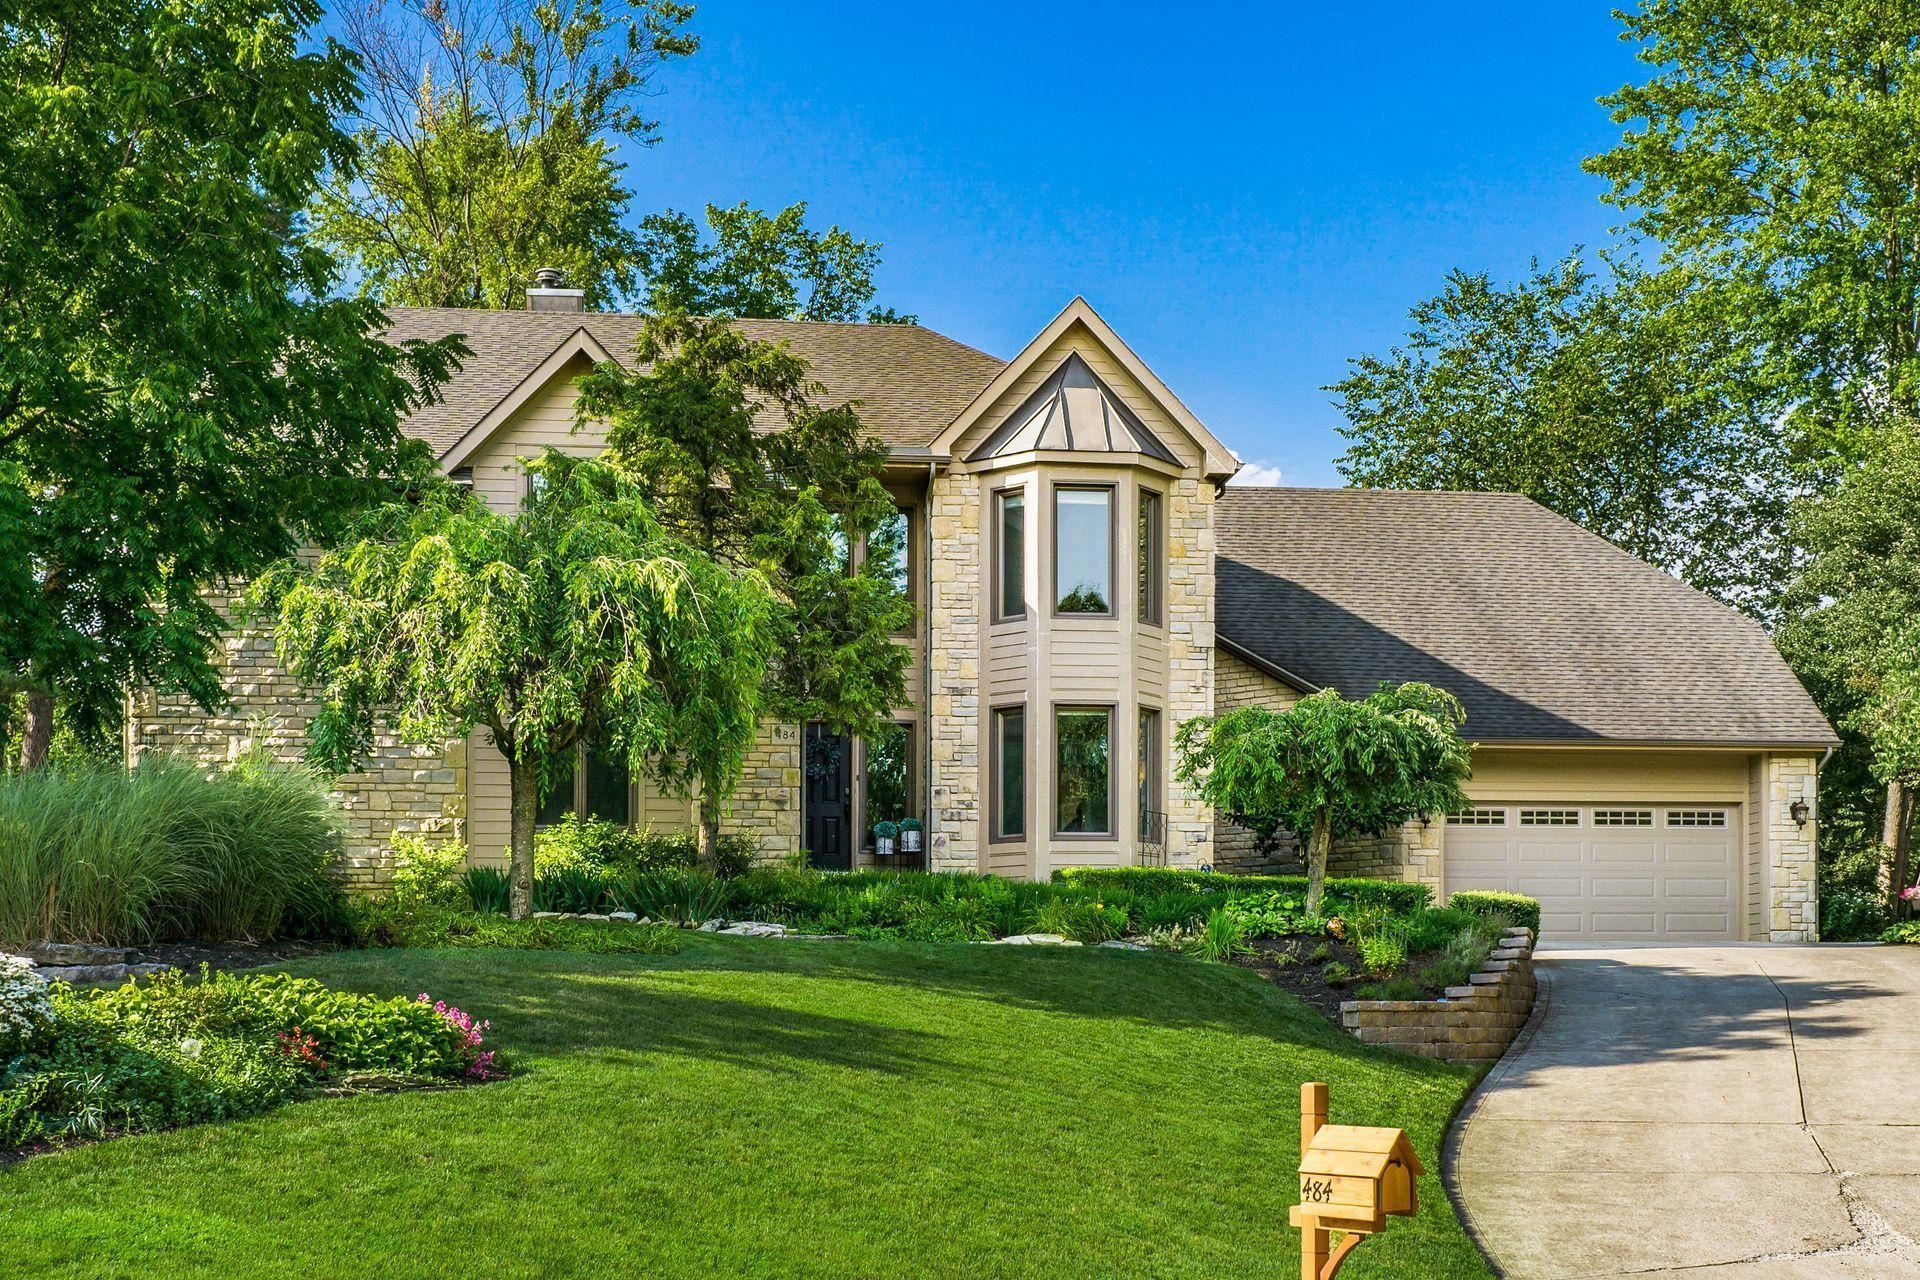 Photo for 484 Old Mill Drive, Columbus, OH 43230 (MLS # 221025409)